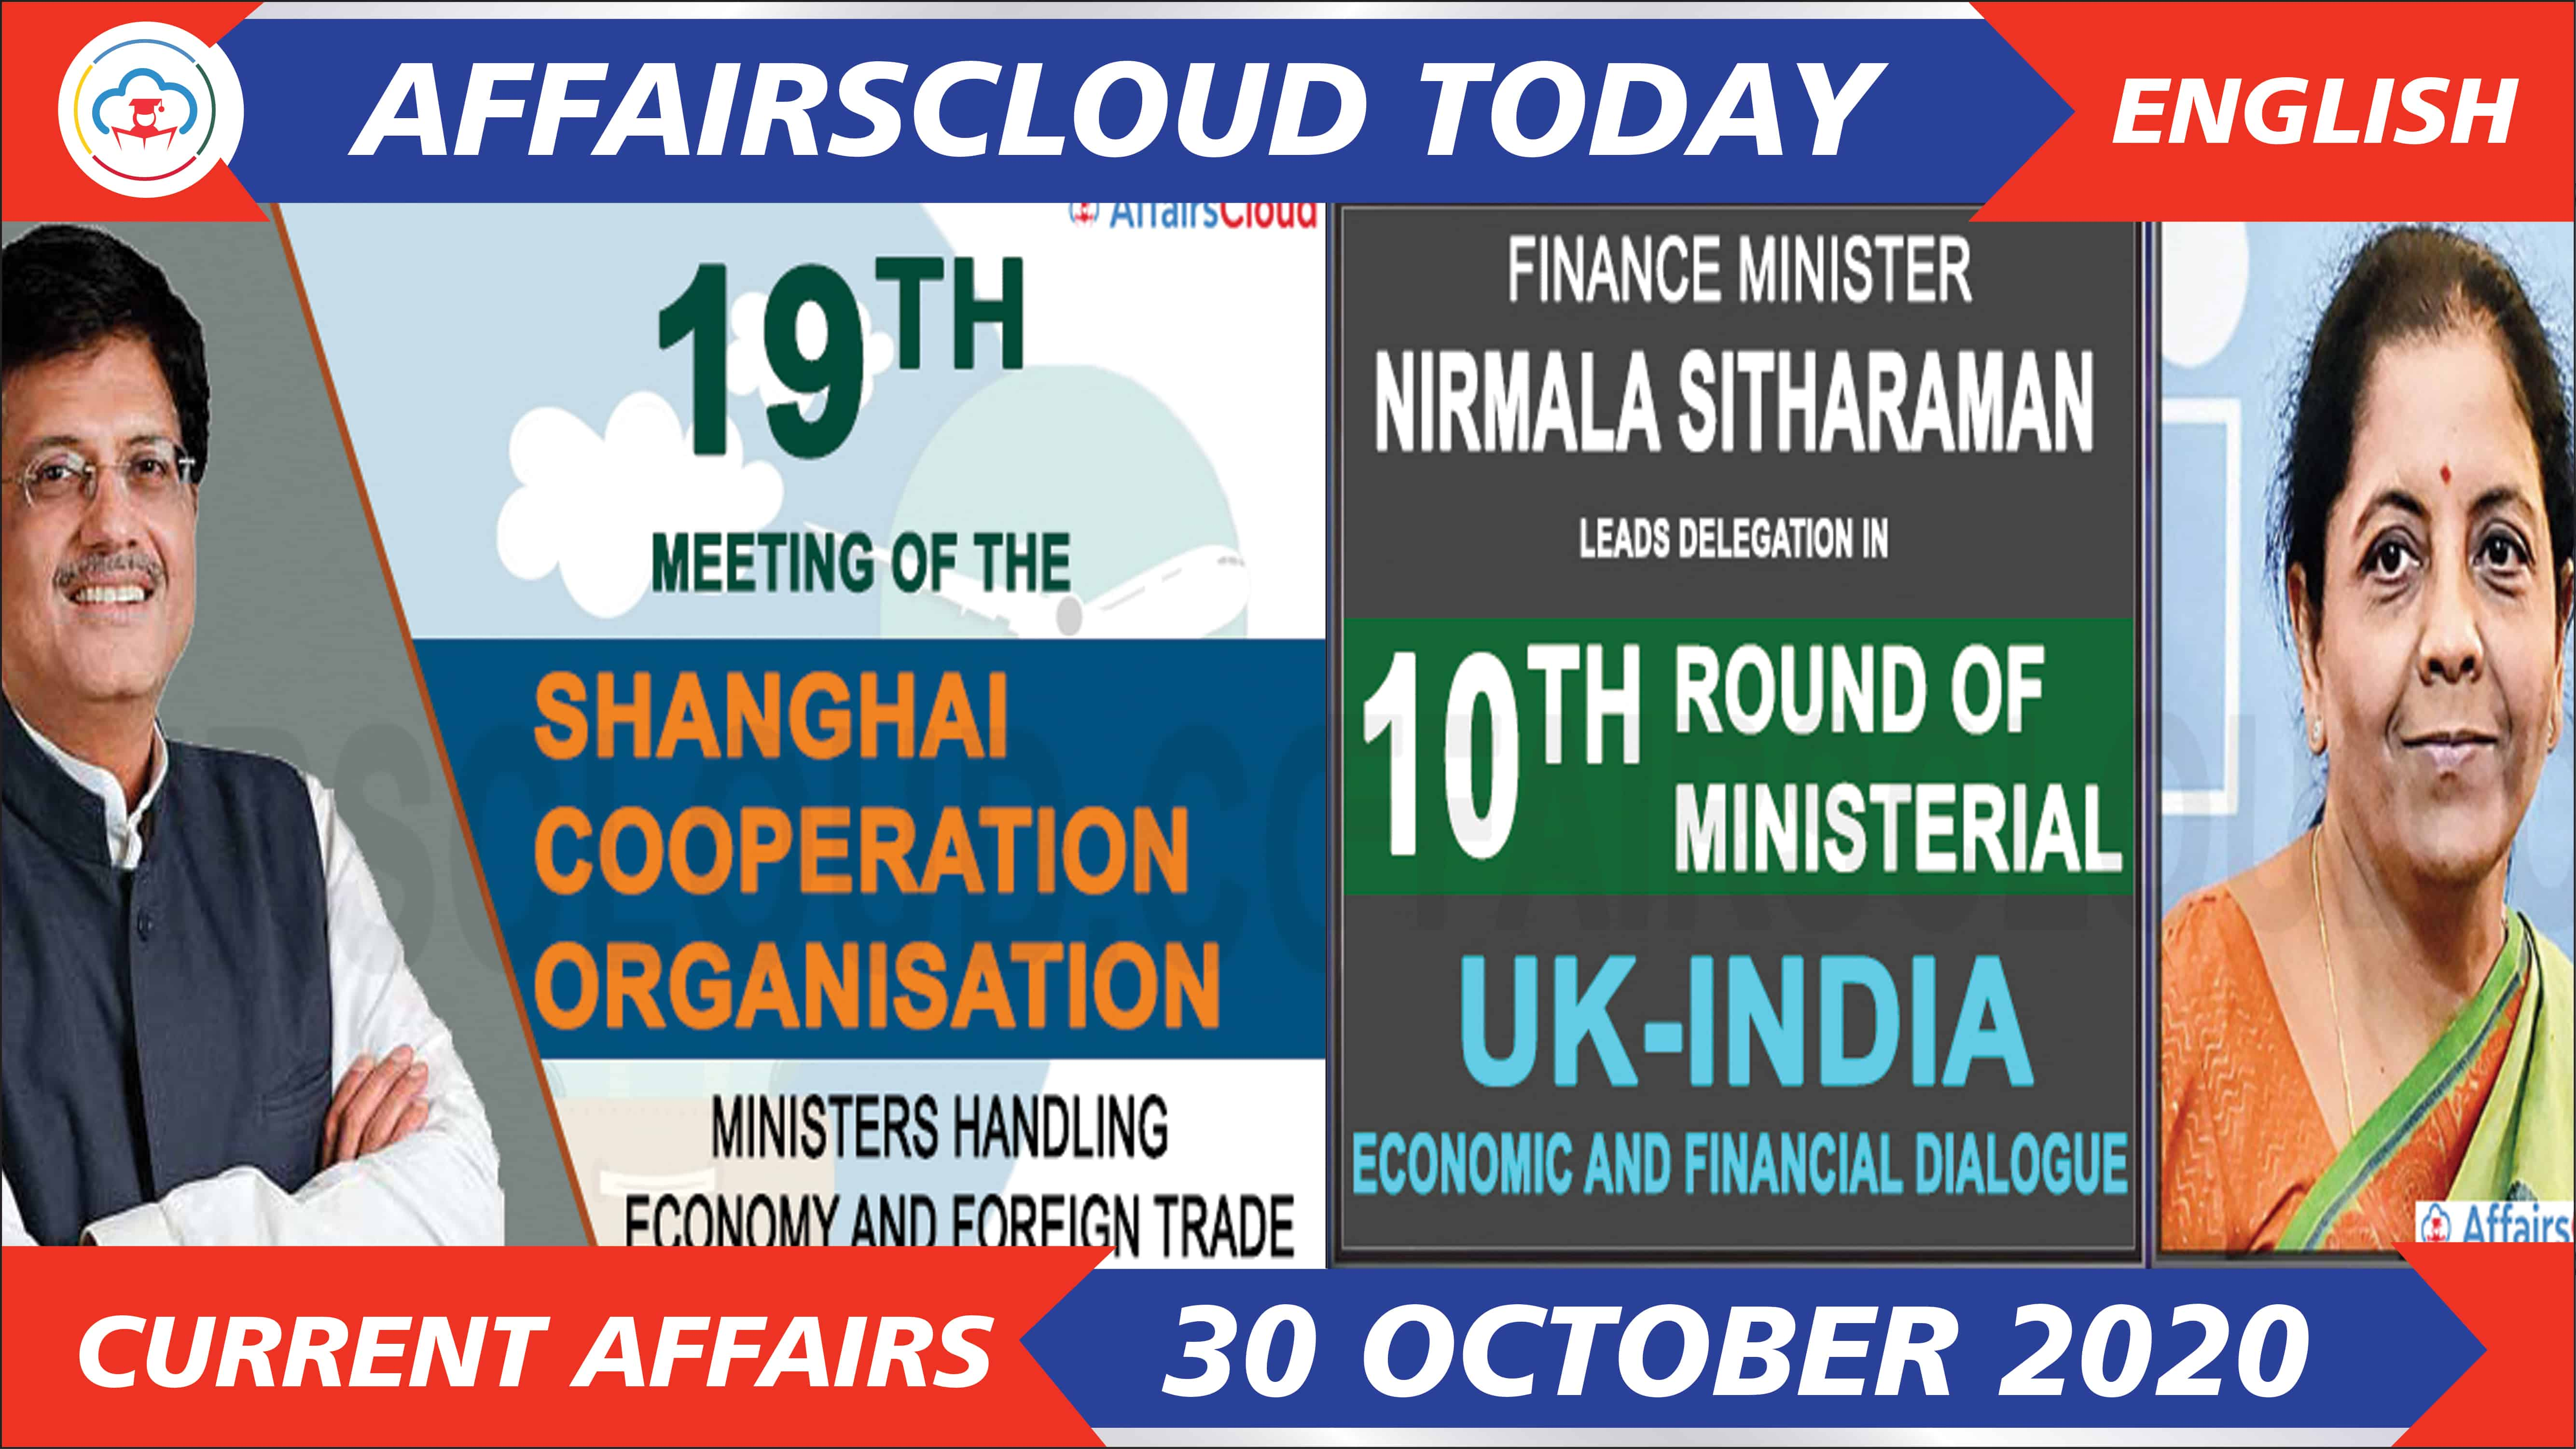 AFFAIRSCLOUD-TODAY-POP-UP-BANNER-FOR-PHOTOSHOP